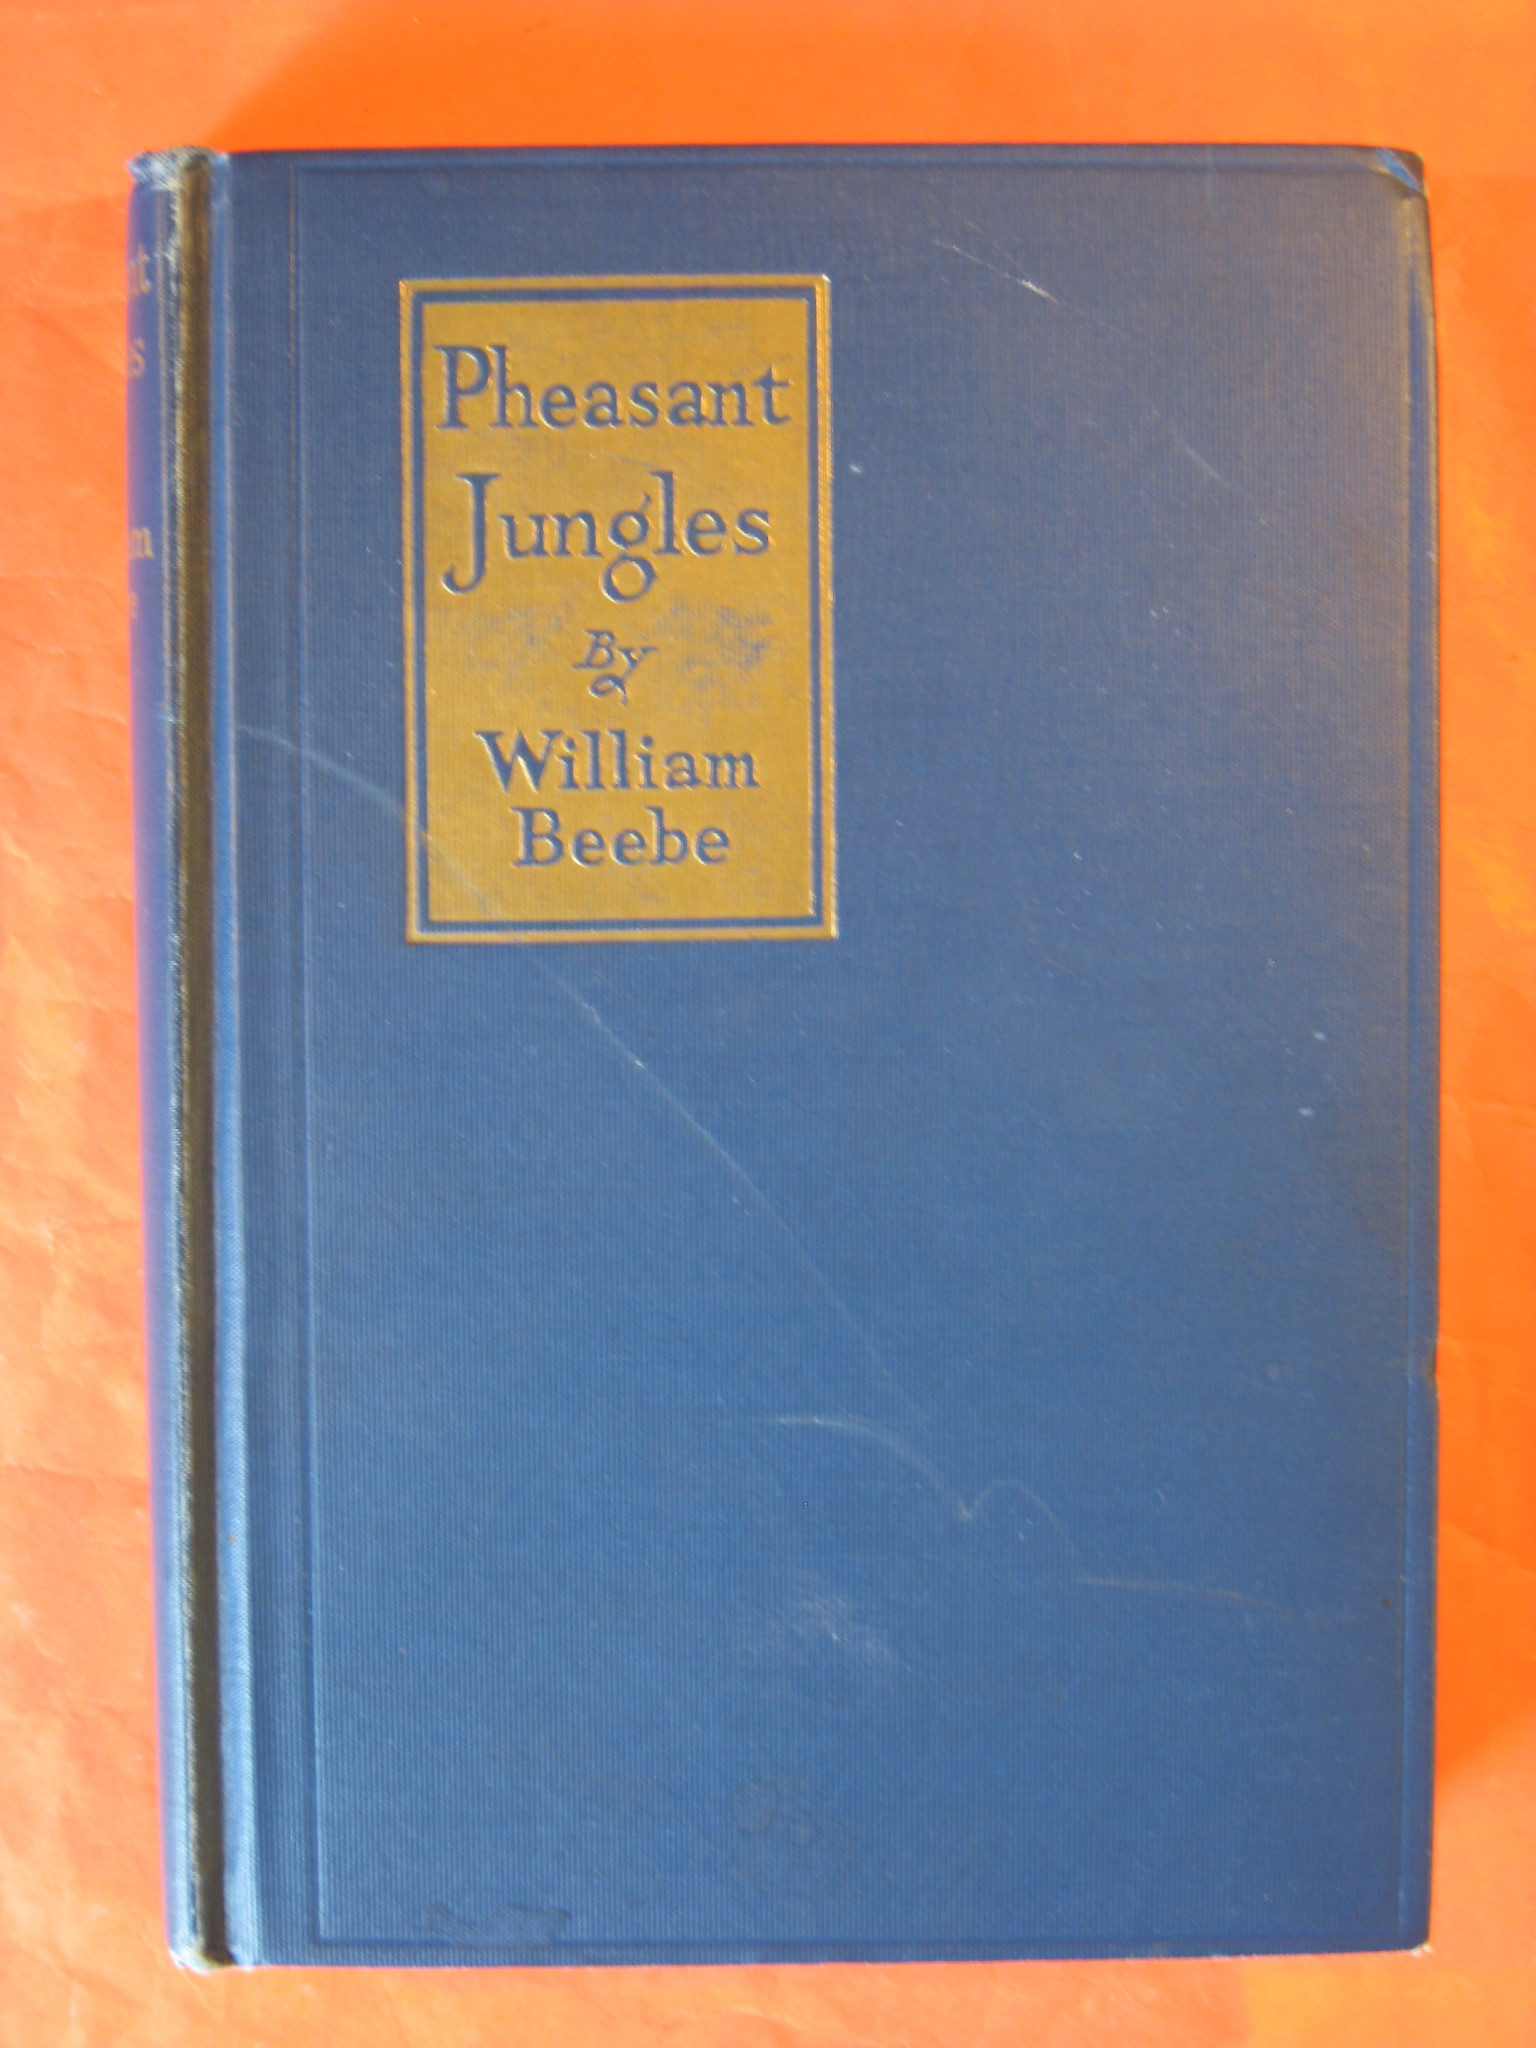 Pheasant Jungles, Beebe, William